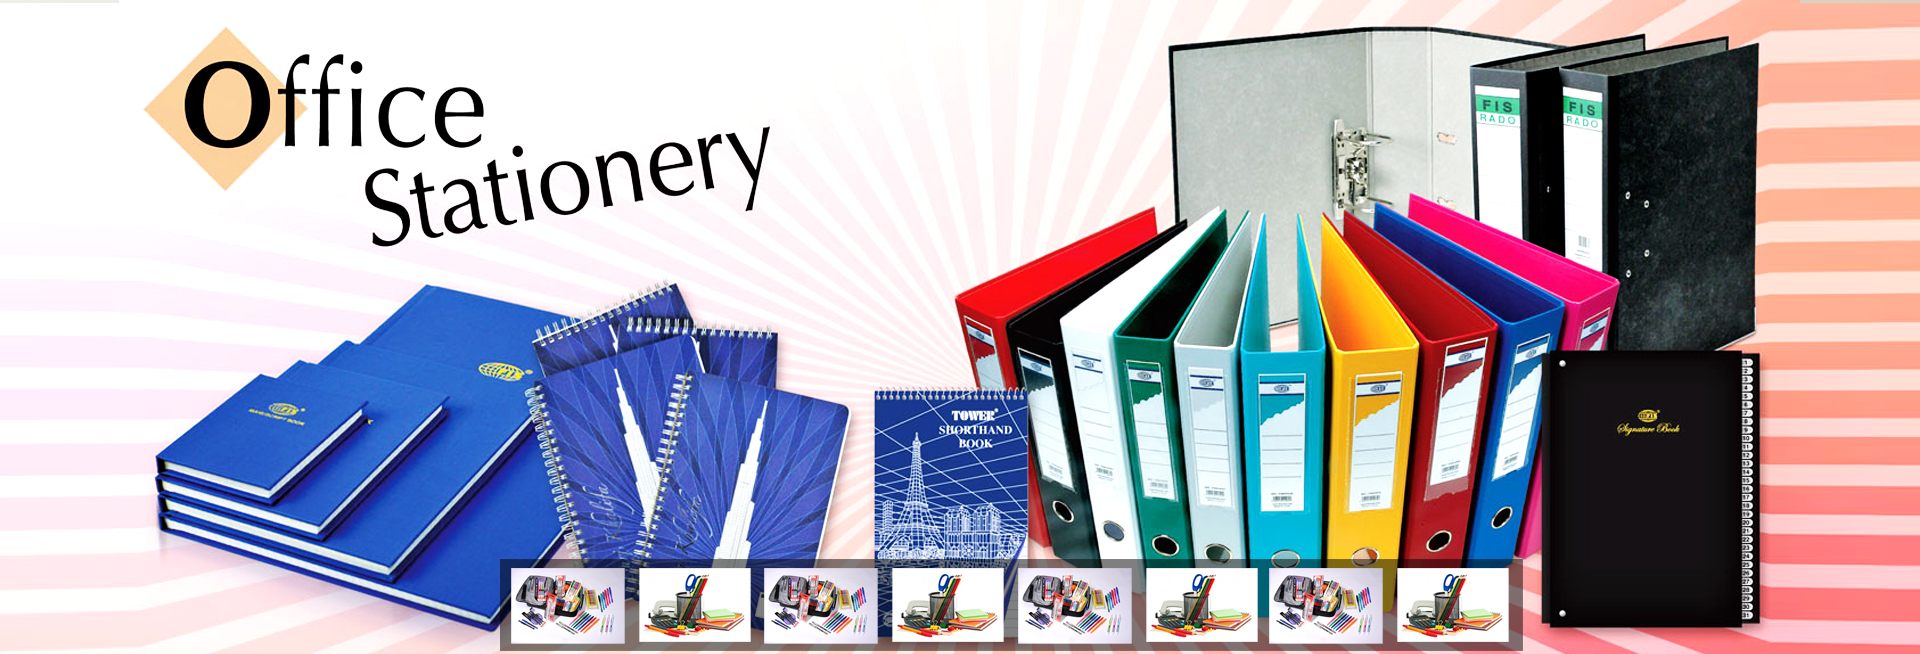 How To Cut Reduce The Rising Office Stationery Costs